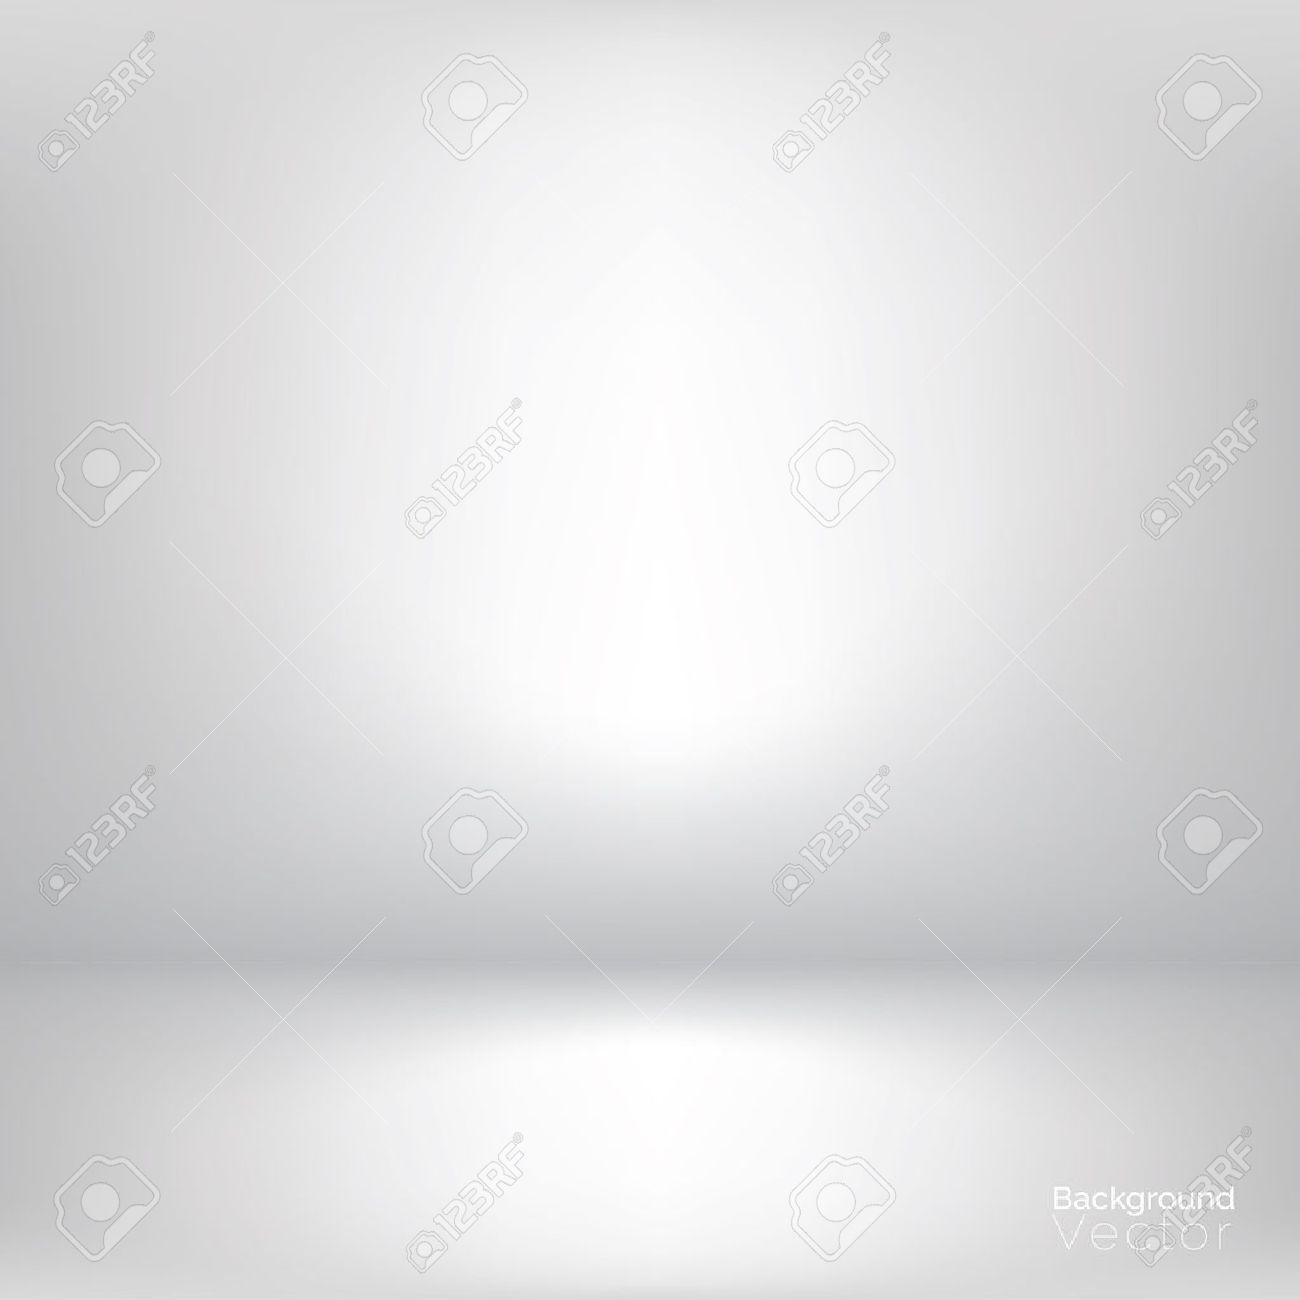 White gray gradient abstract background - 65692009